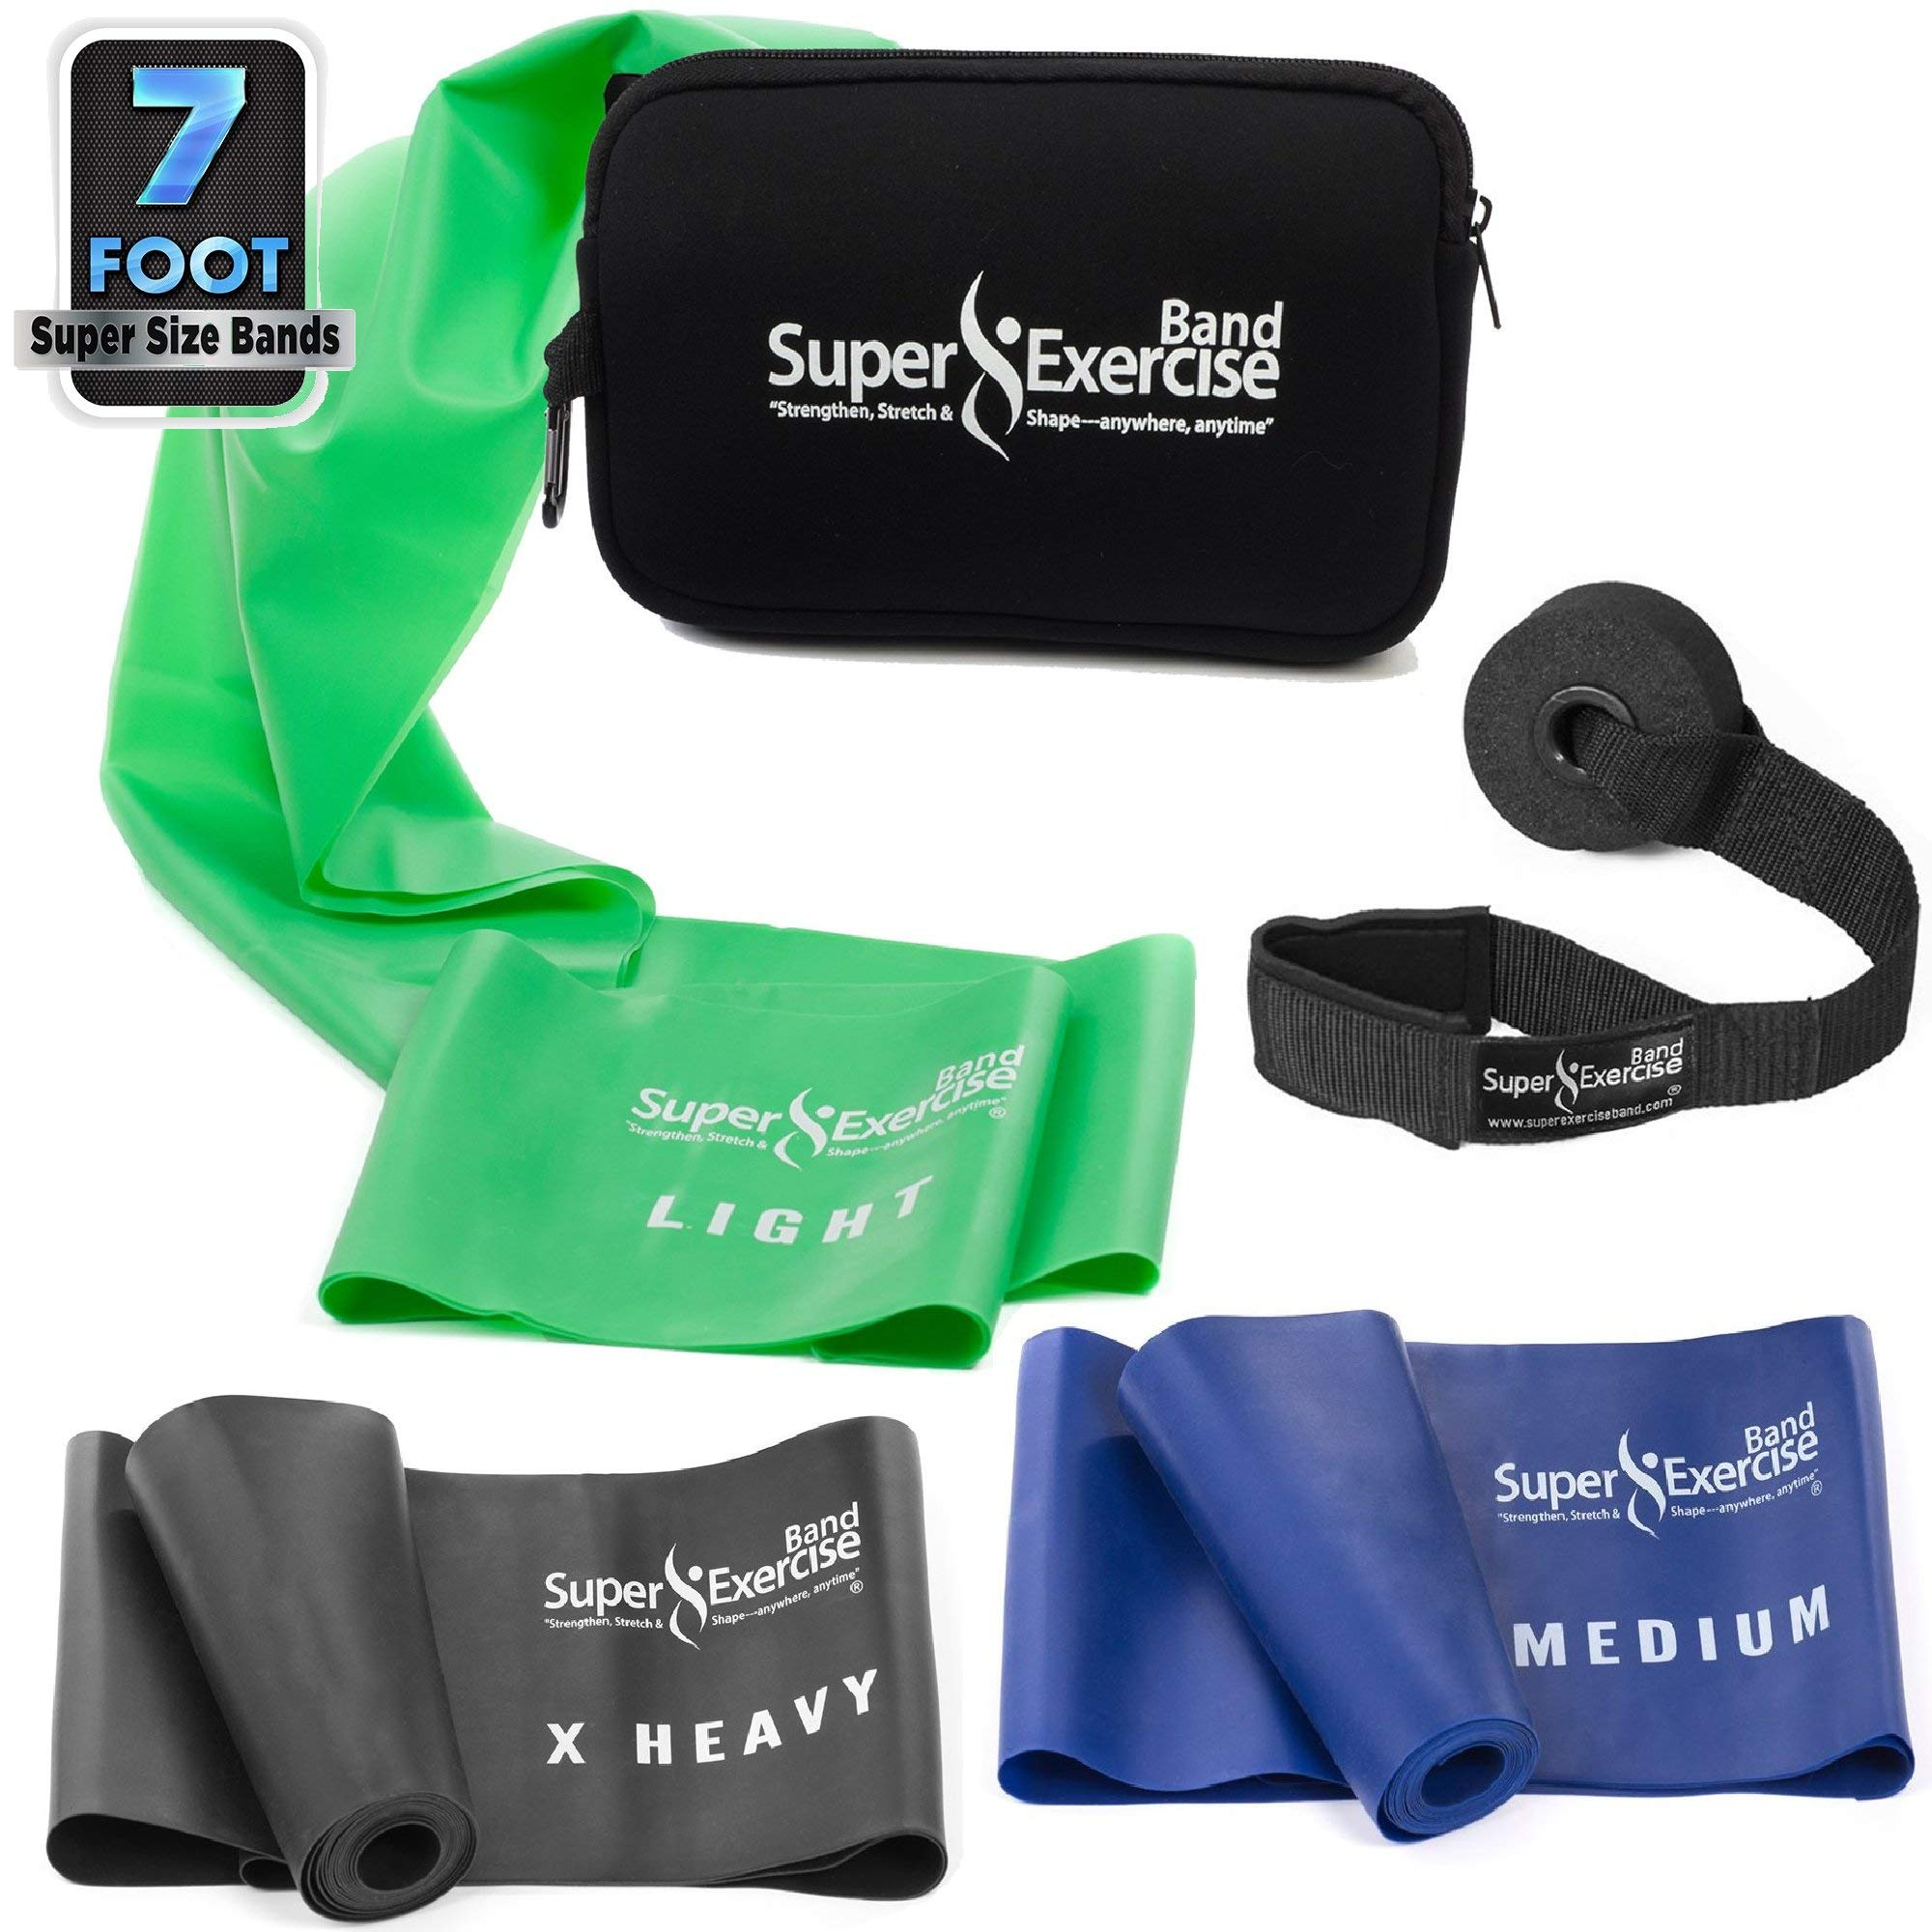 Super Exercise Band 7 ft Resistance Bands Set of 3. Ideal Fitness Gift Kit in Medium Strength Latex Free Bands for Strength Training or Physical Therapy with Door Anchor, Carry Pouch, ebook.